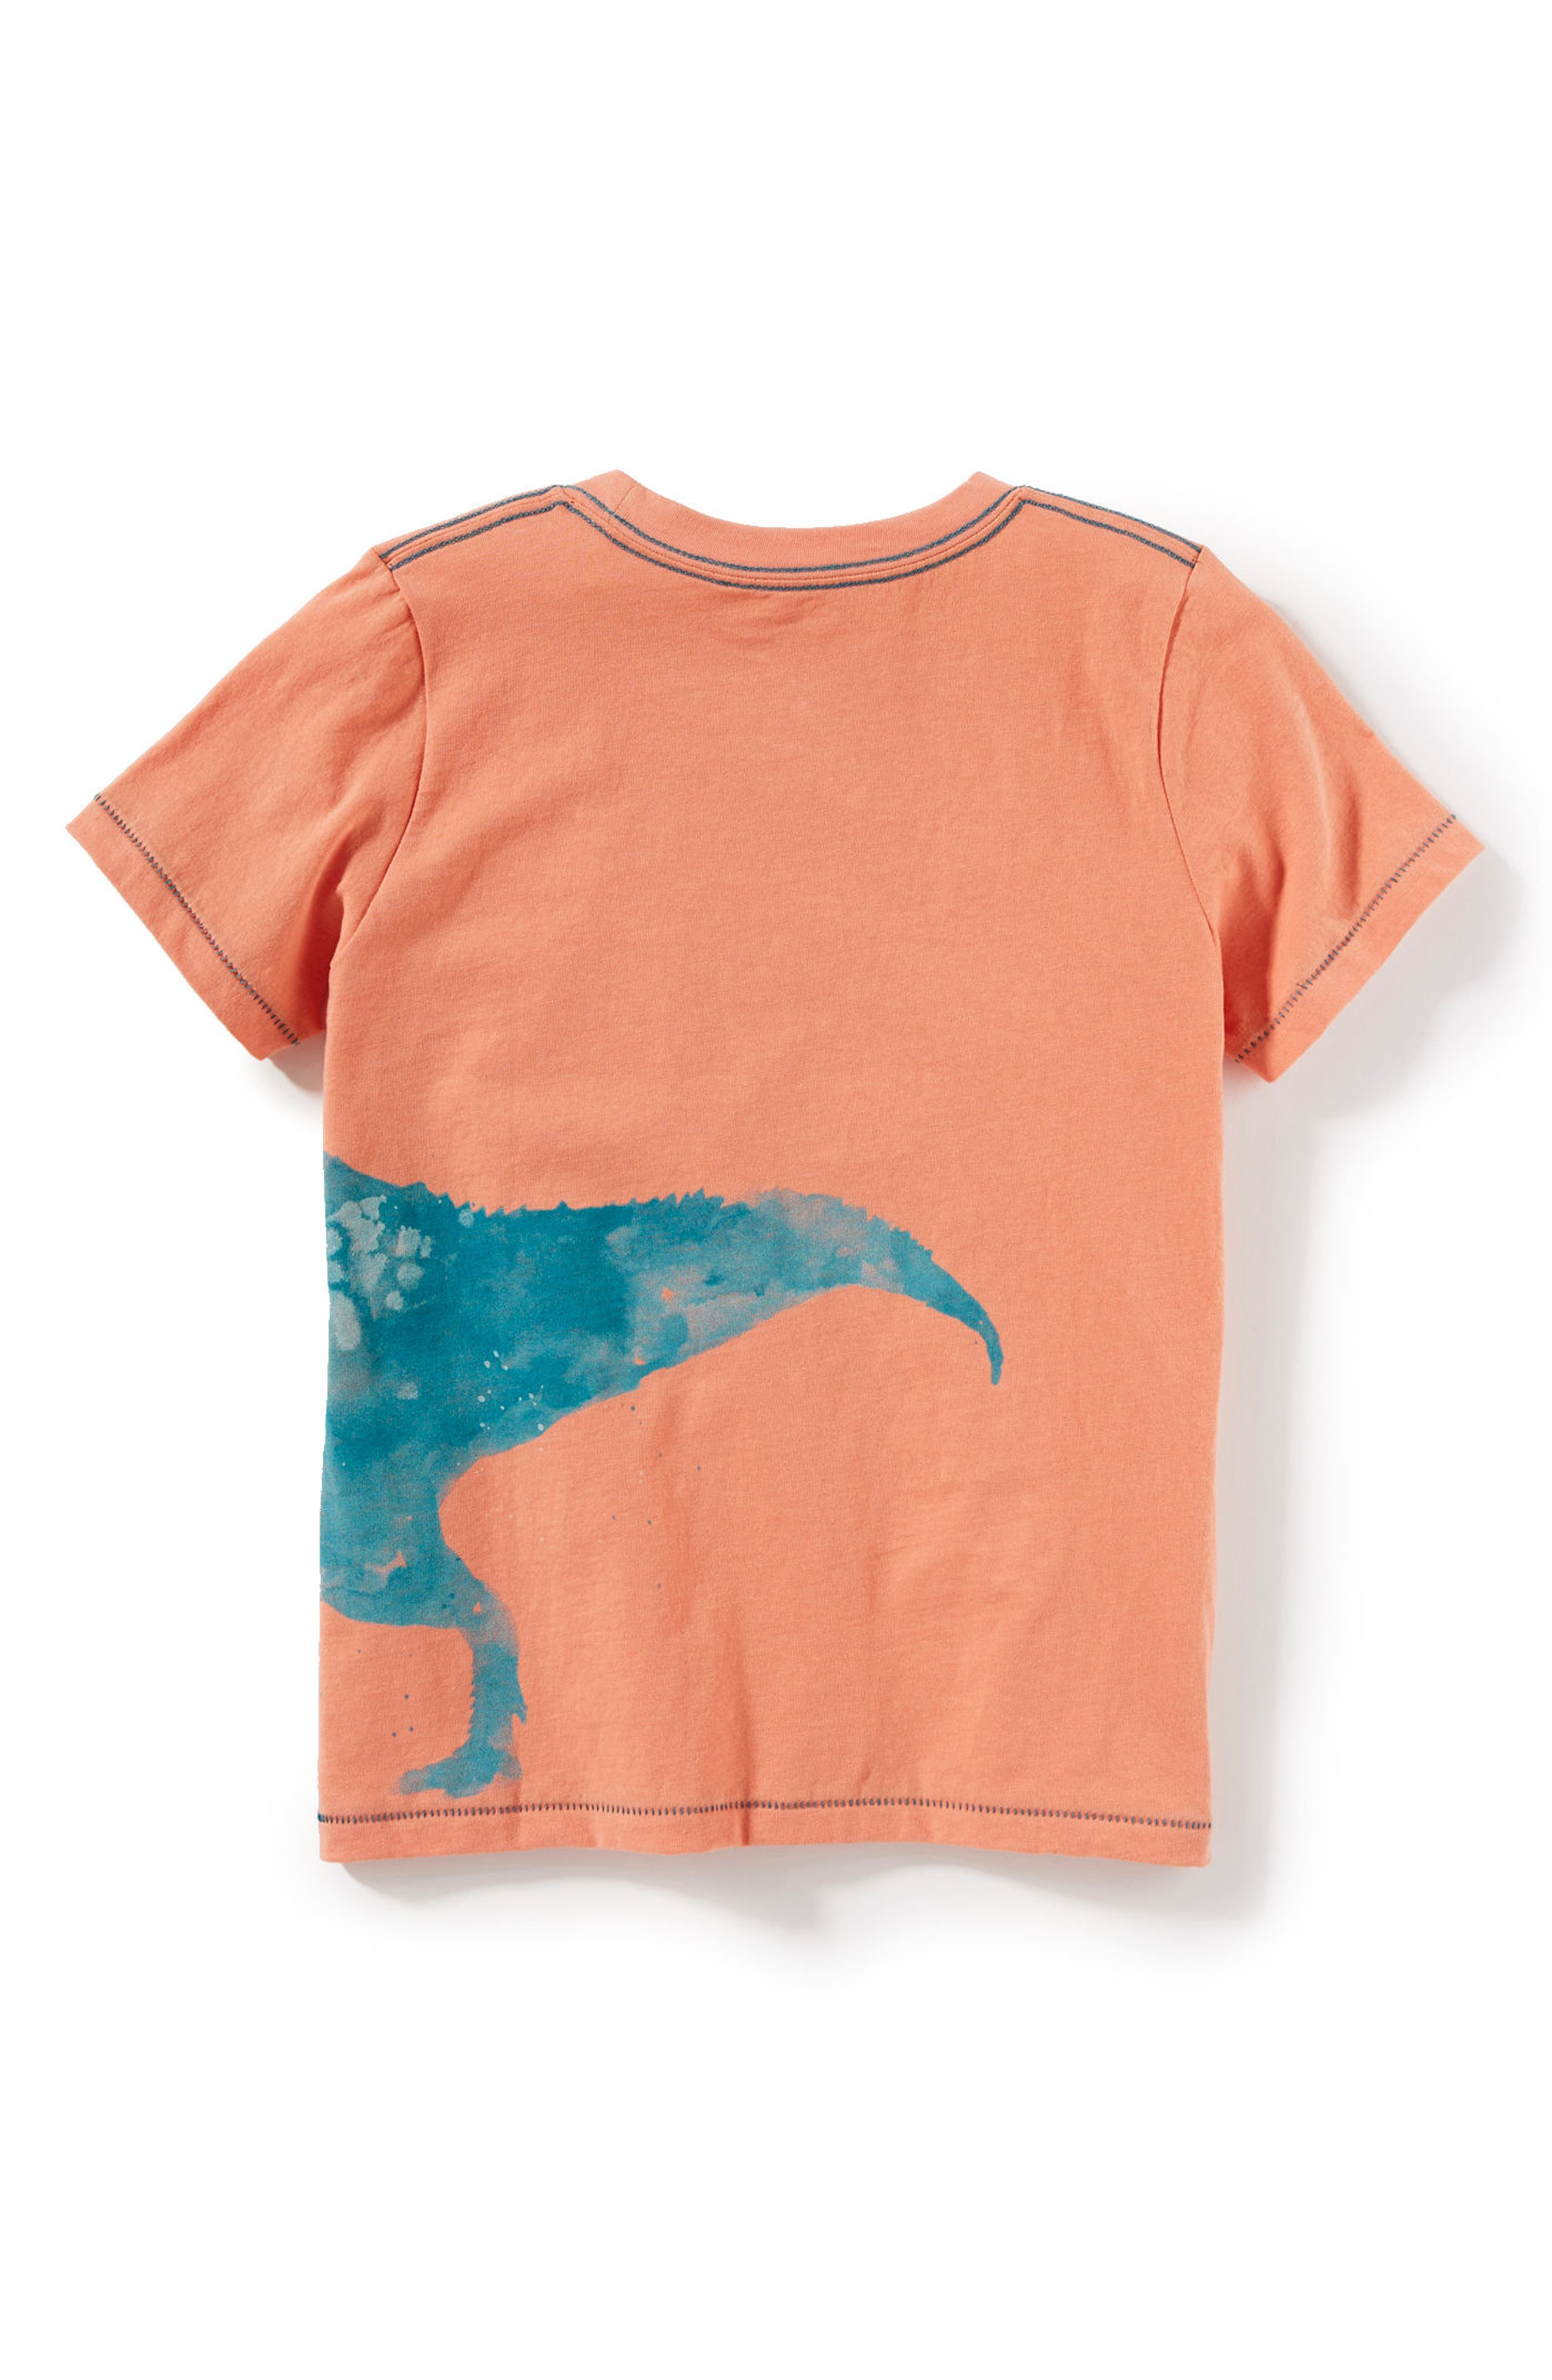 Dinosaur Graphic T-Shirt,                             Alternate thumbnail 2, color,                             950